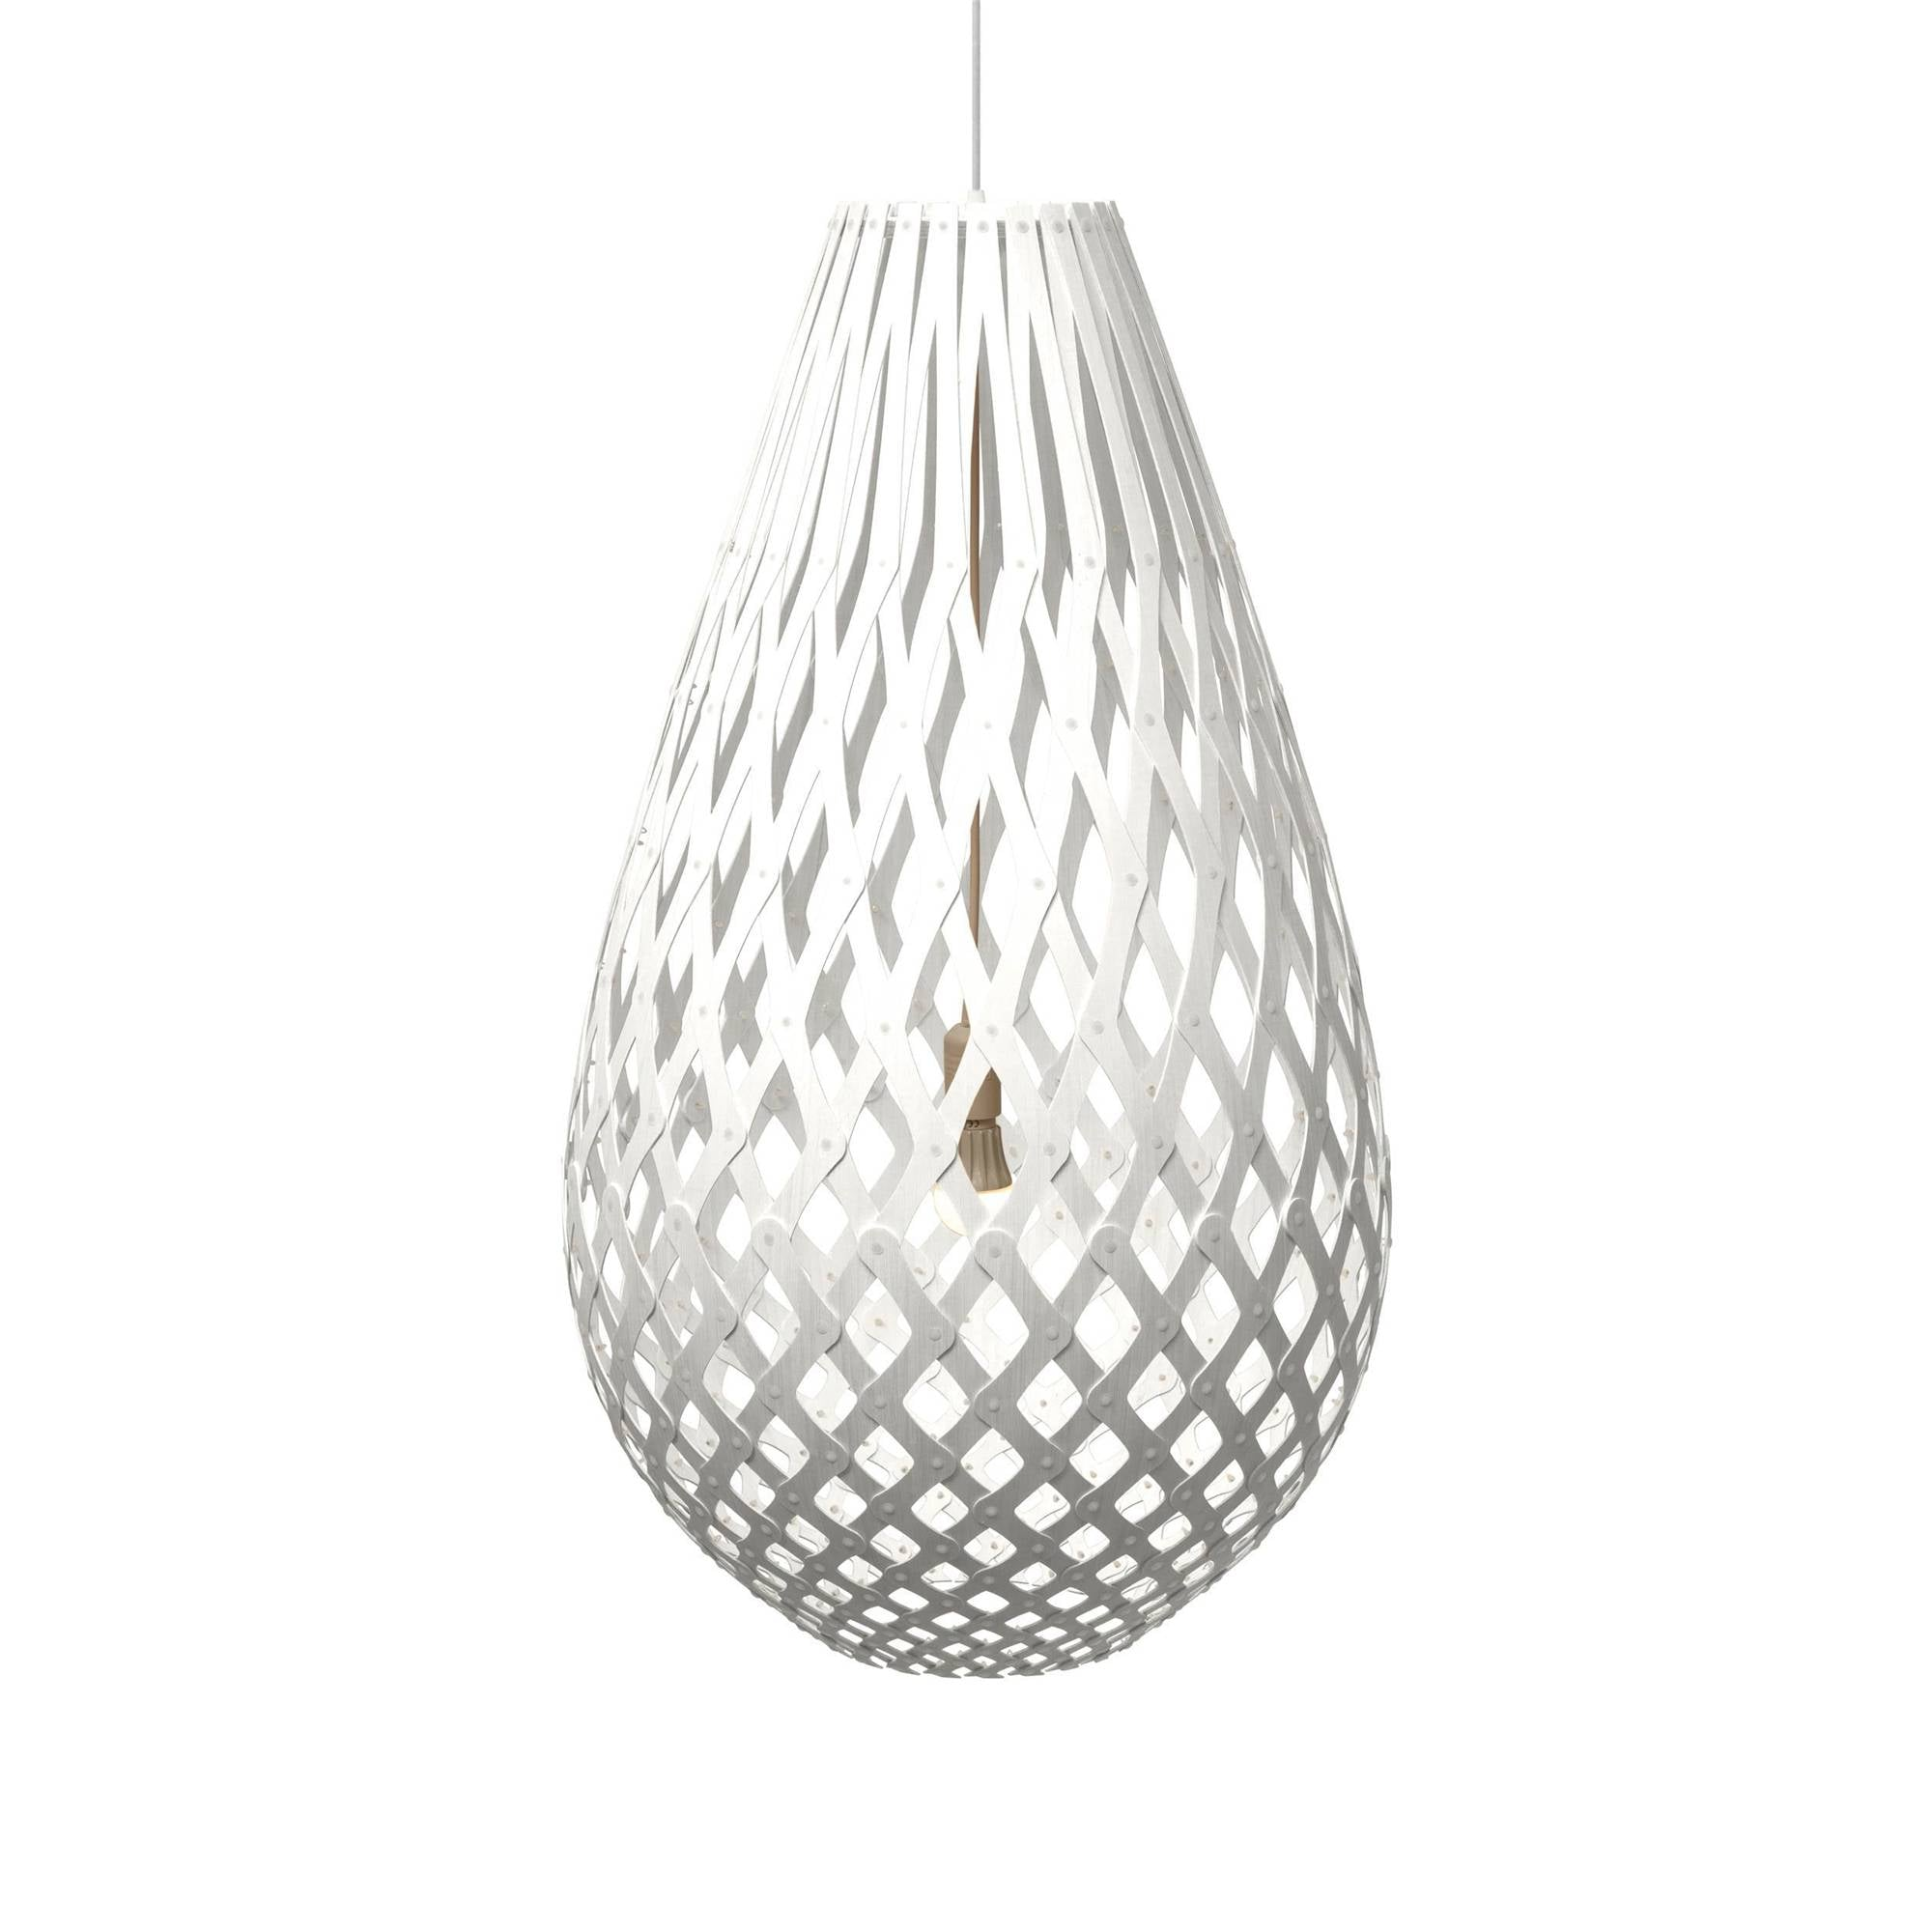 Koura Pendant Light: 1000 + White Two Sides